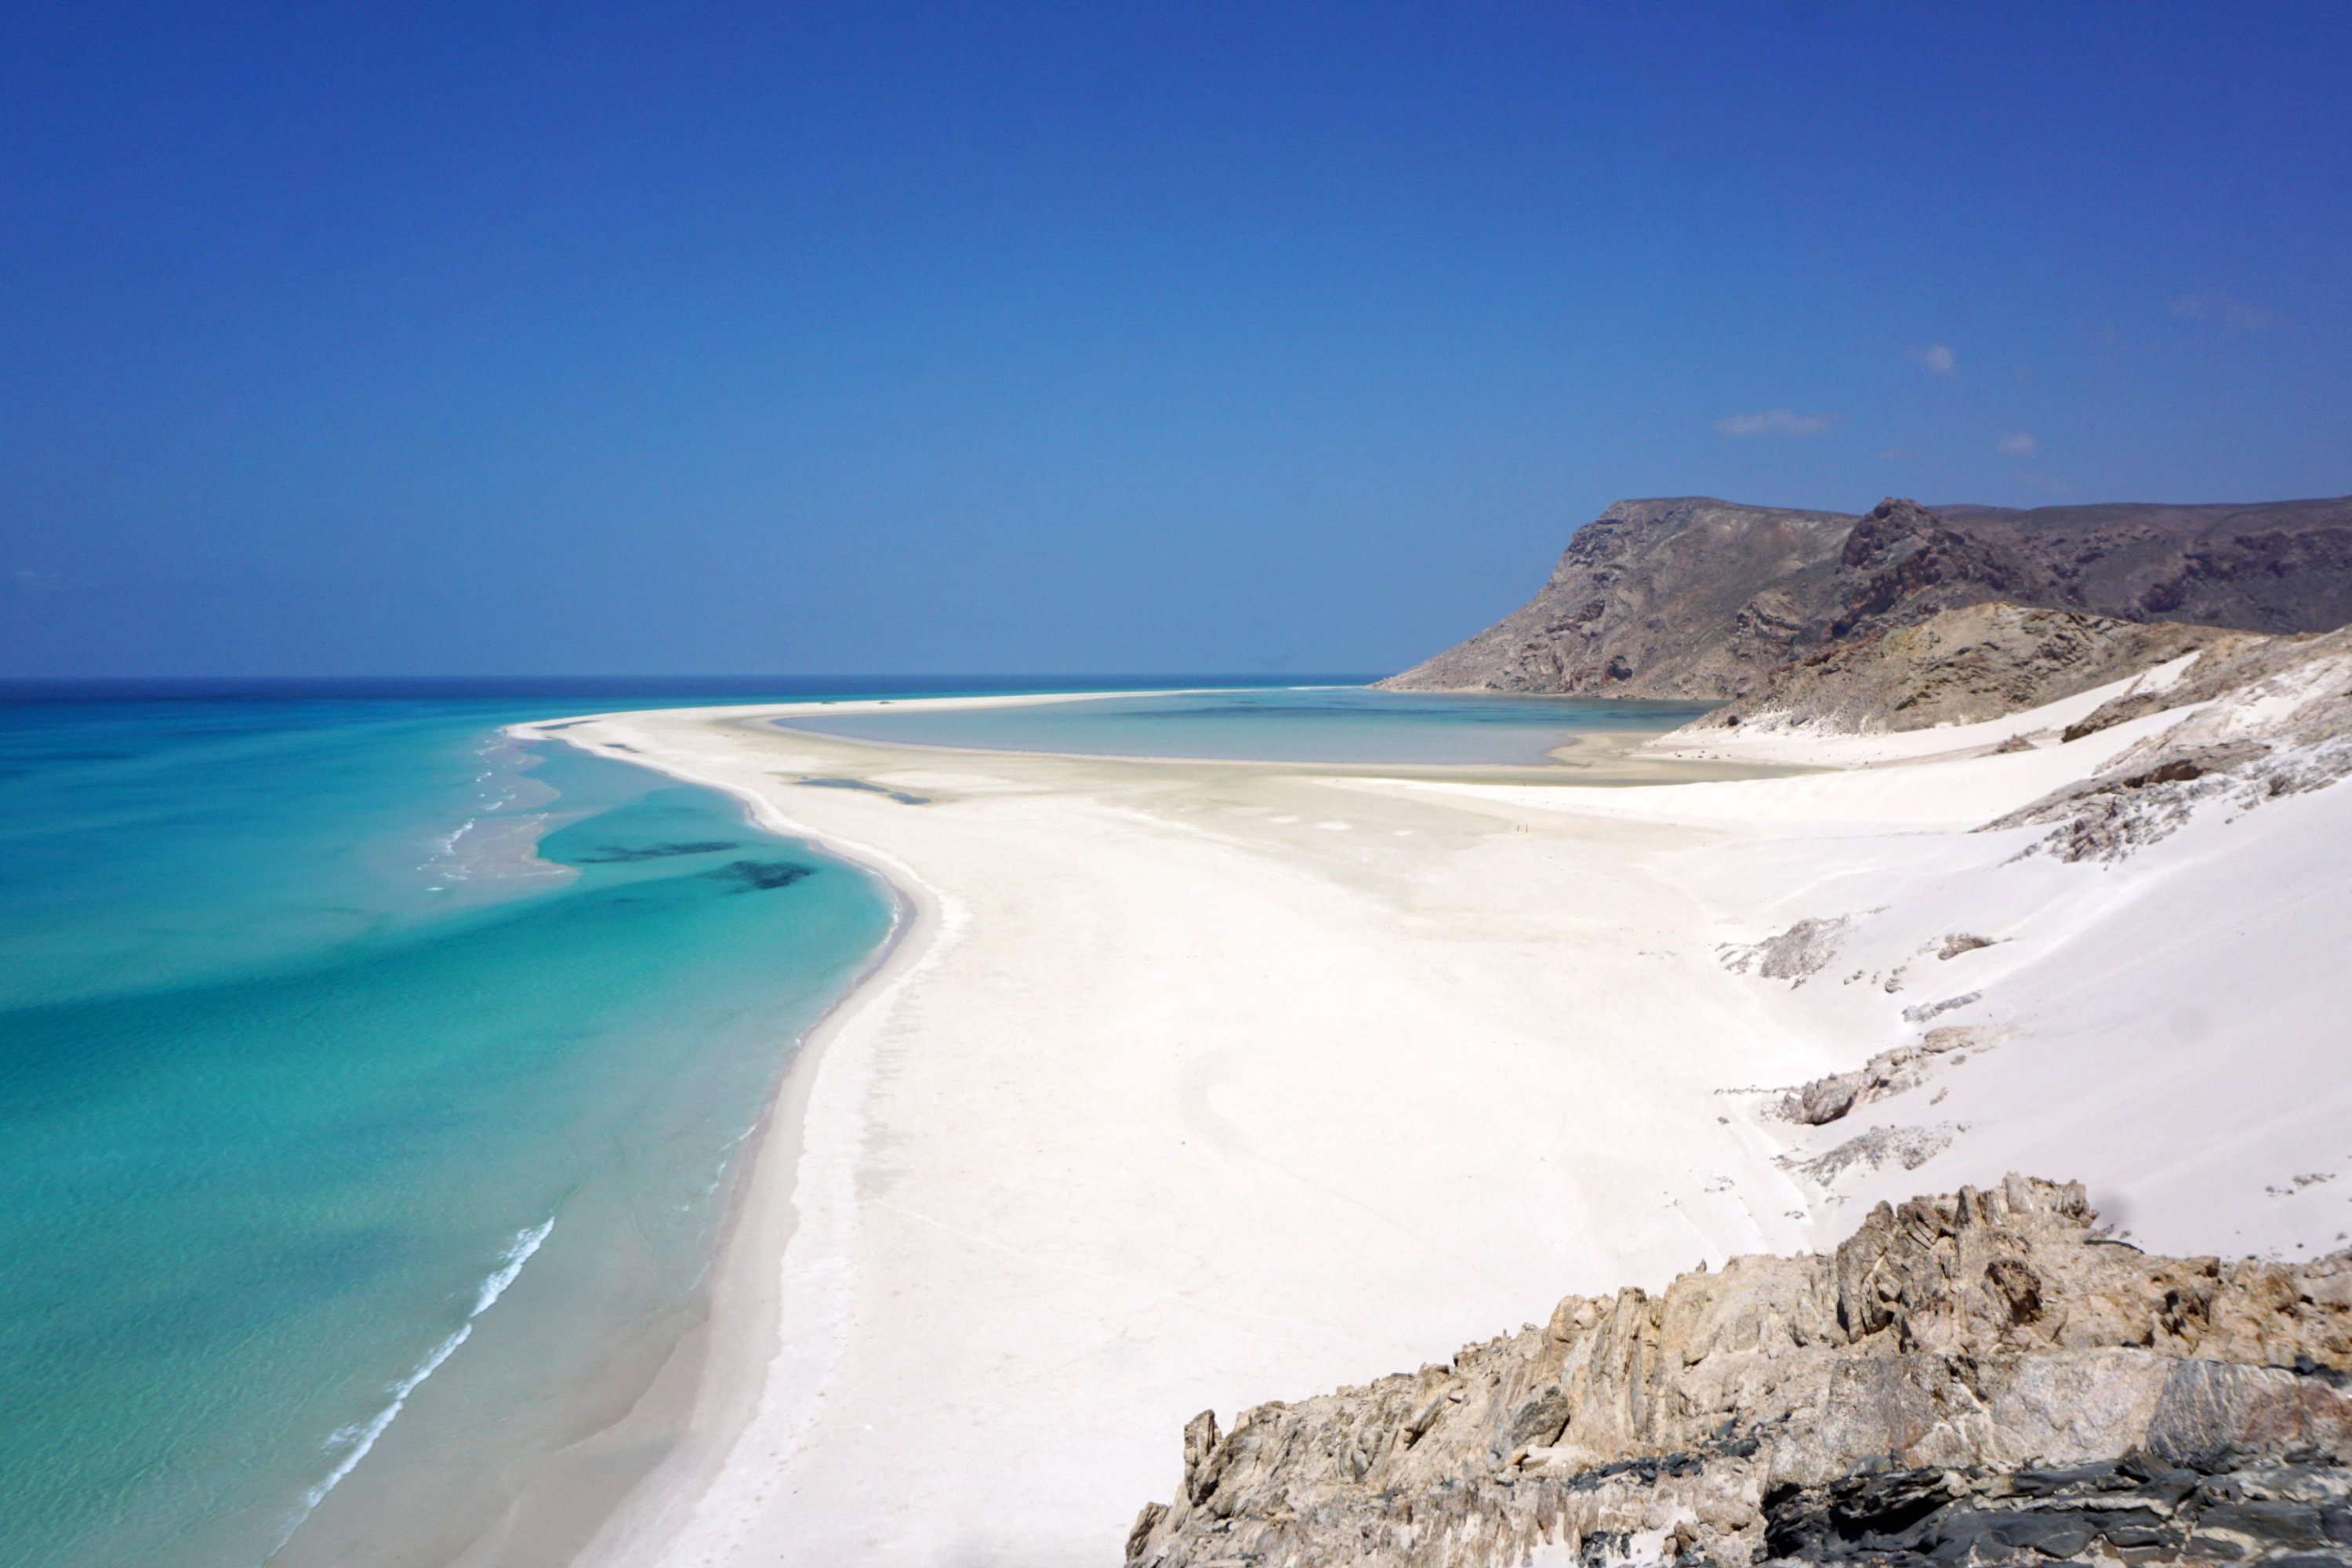 White sands cover a beach of Detwah Lagoon, on the far west of the Yemeni island of Socotra, April 14, 2021. (AFP Photo)